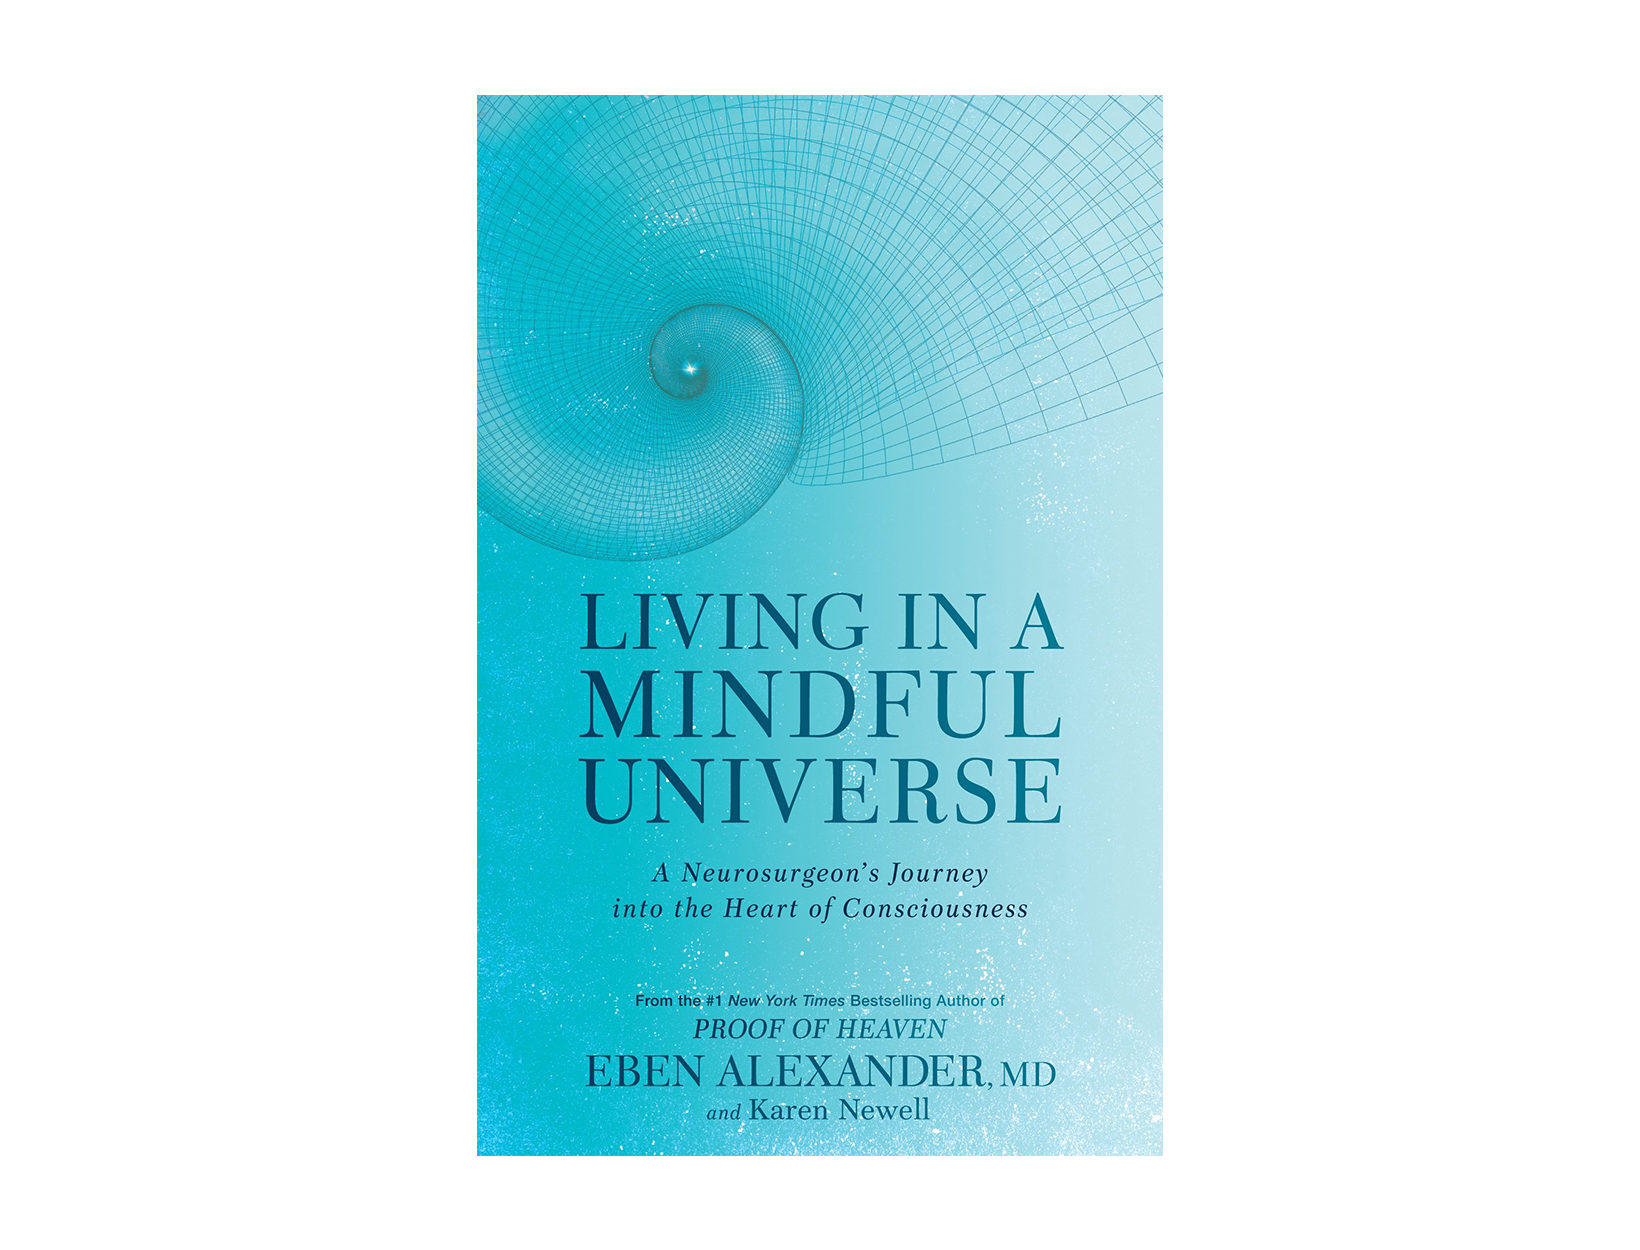 Living in a Mindful Universe: A Neurosurgeon's Journey into the Heart of Consciousness by Eben Alexander, M.D. & Karen Newell